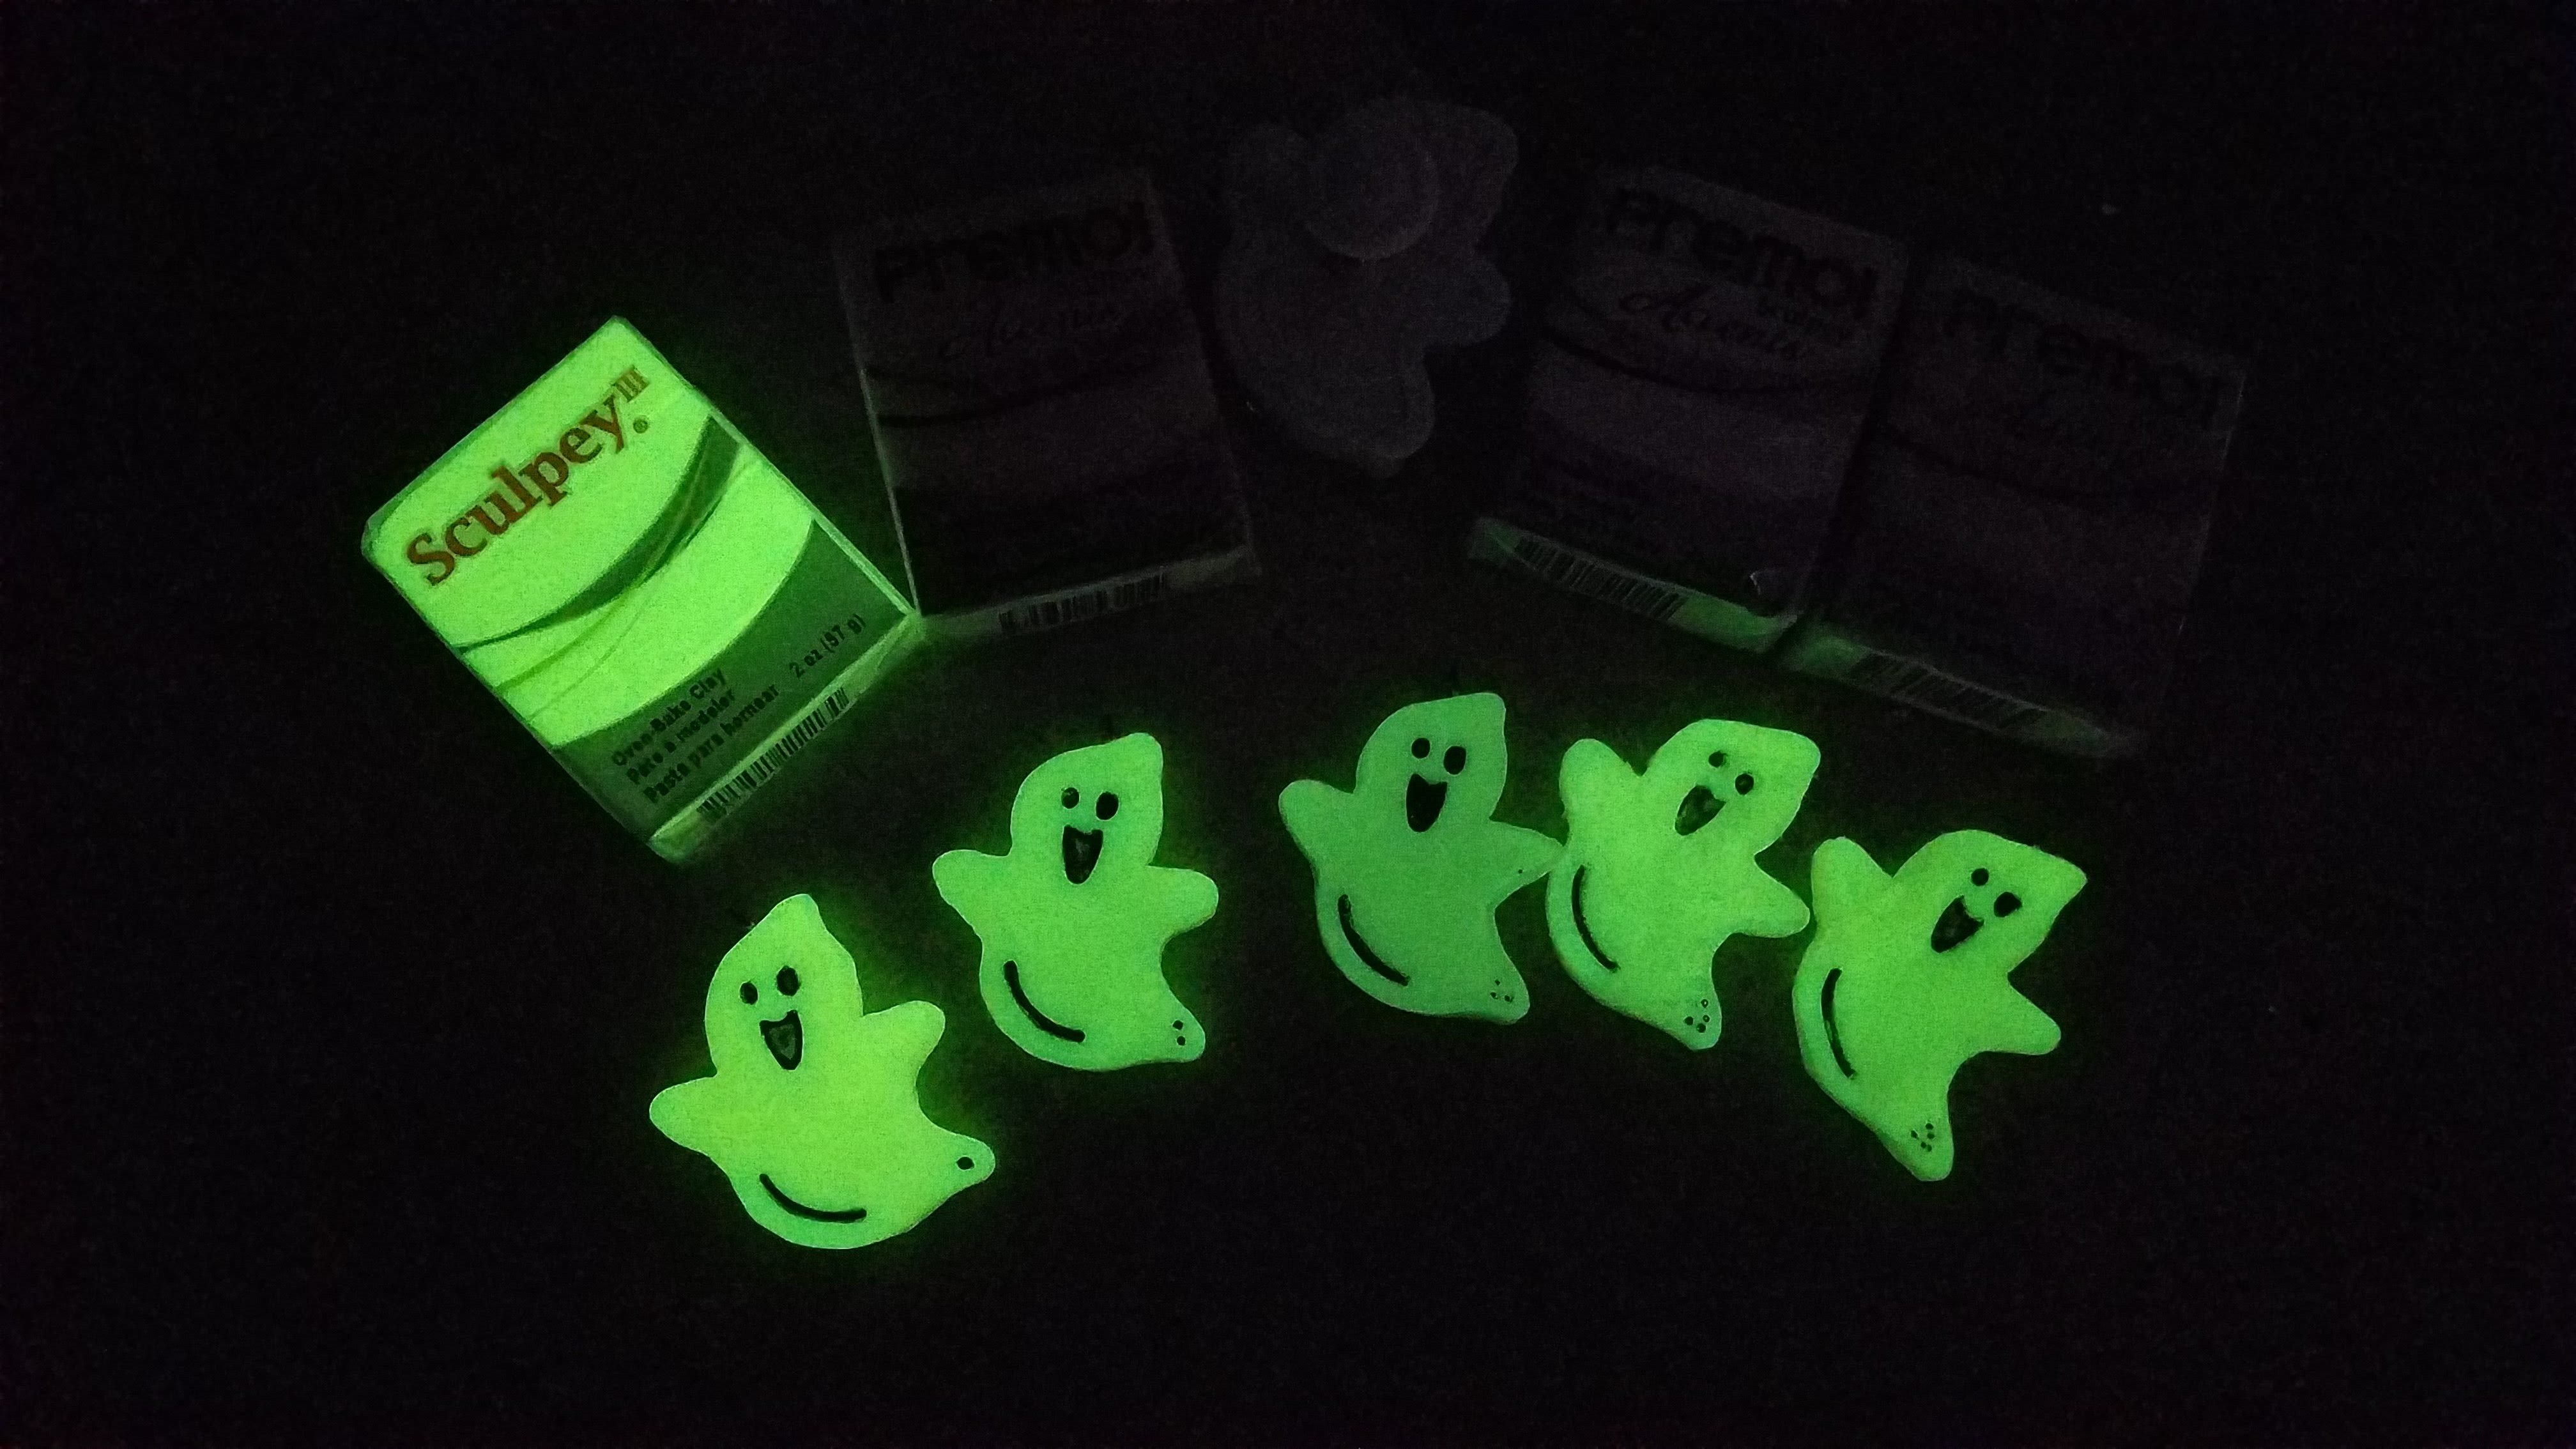 Experimenting with Glow-in-the-dark Polymer Clay